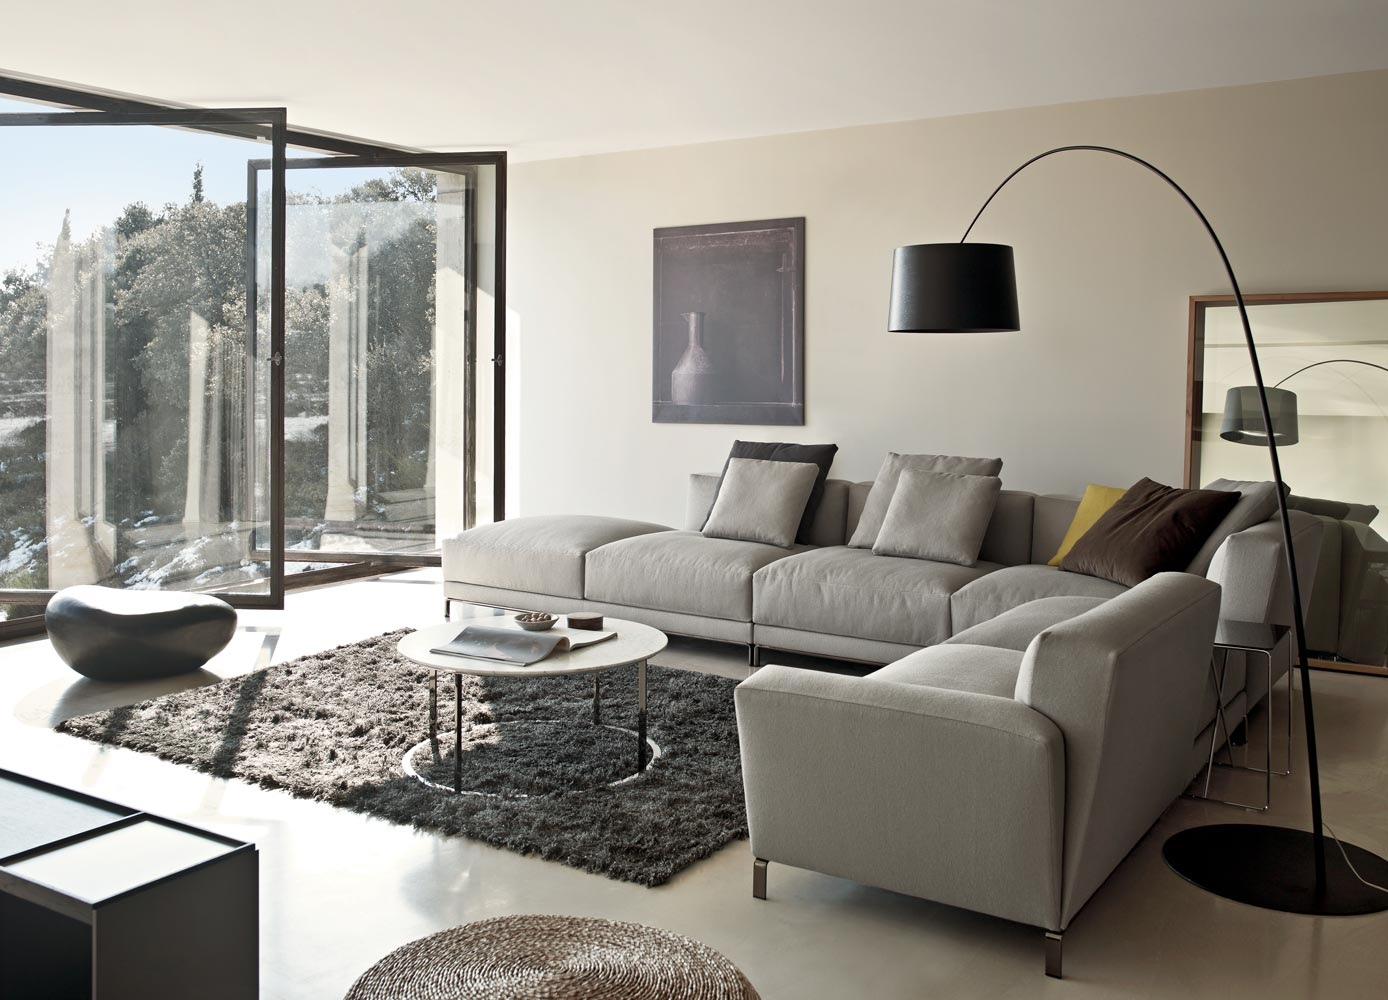 couch wohnzimmer:Grey Sectional Sofa Living Room Ideas